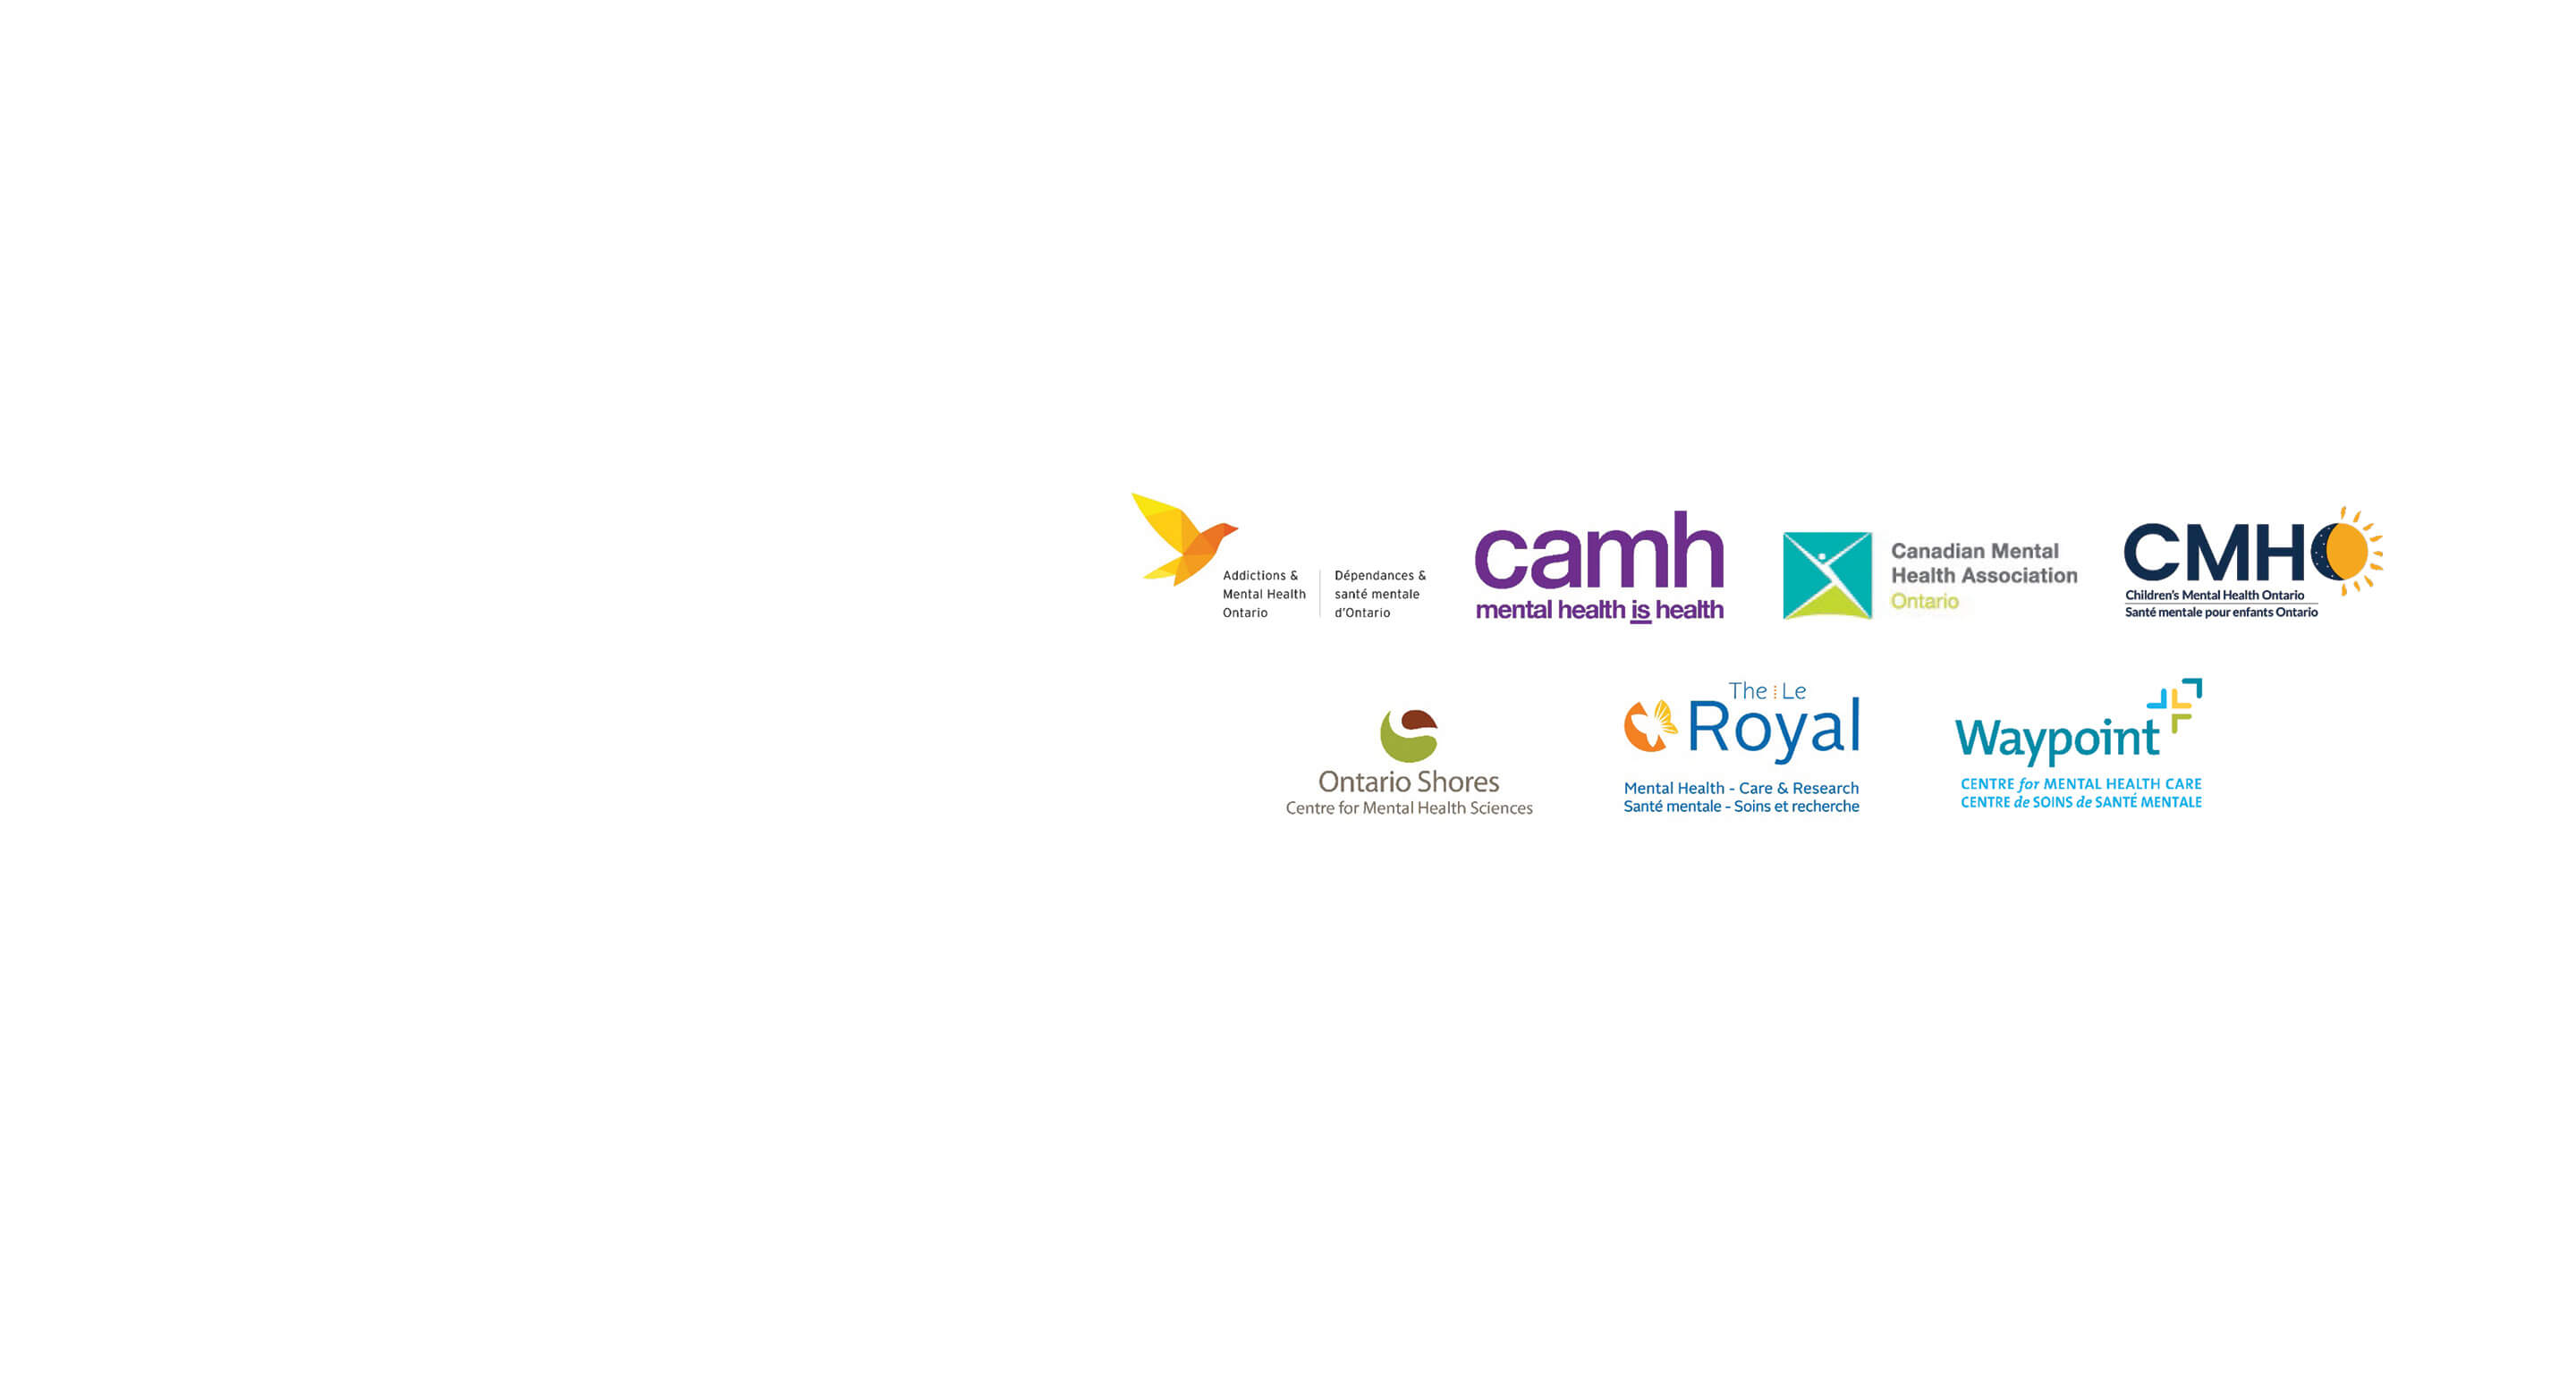 Logos Ontario Mental Health and Addiction providers